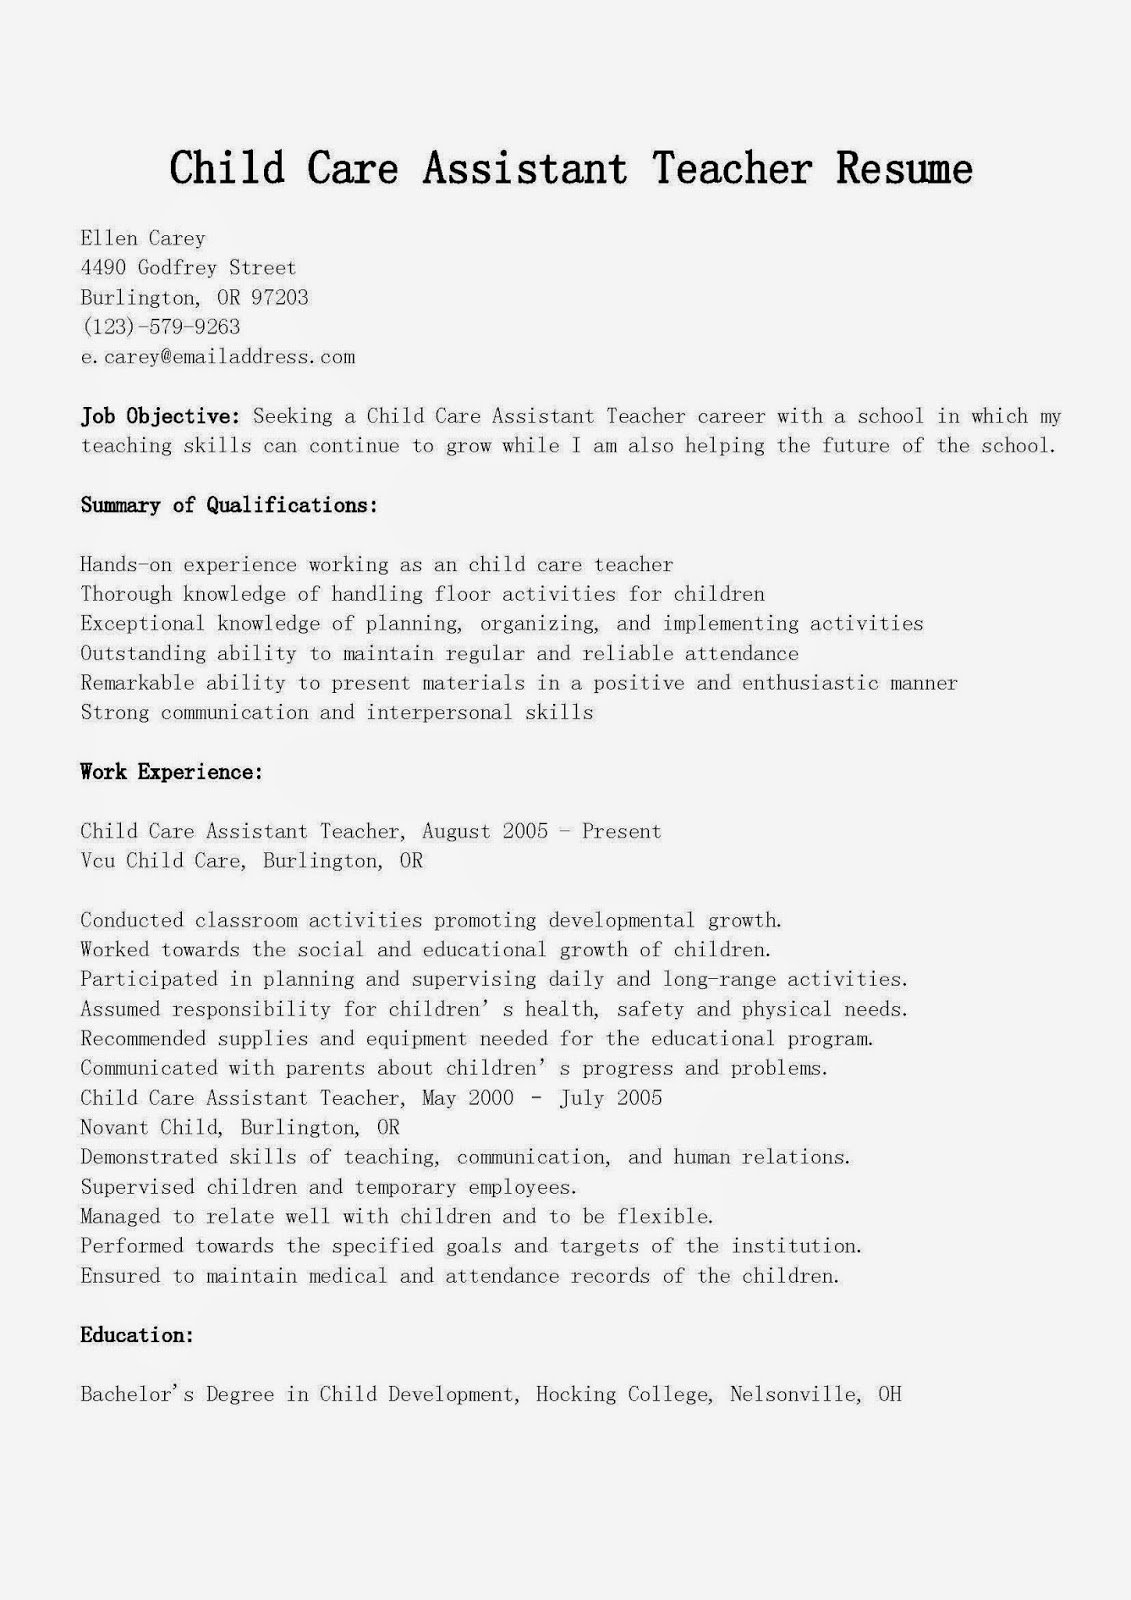 Resume Samples Child Care assistant Teacher Resume Sample